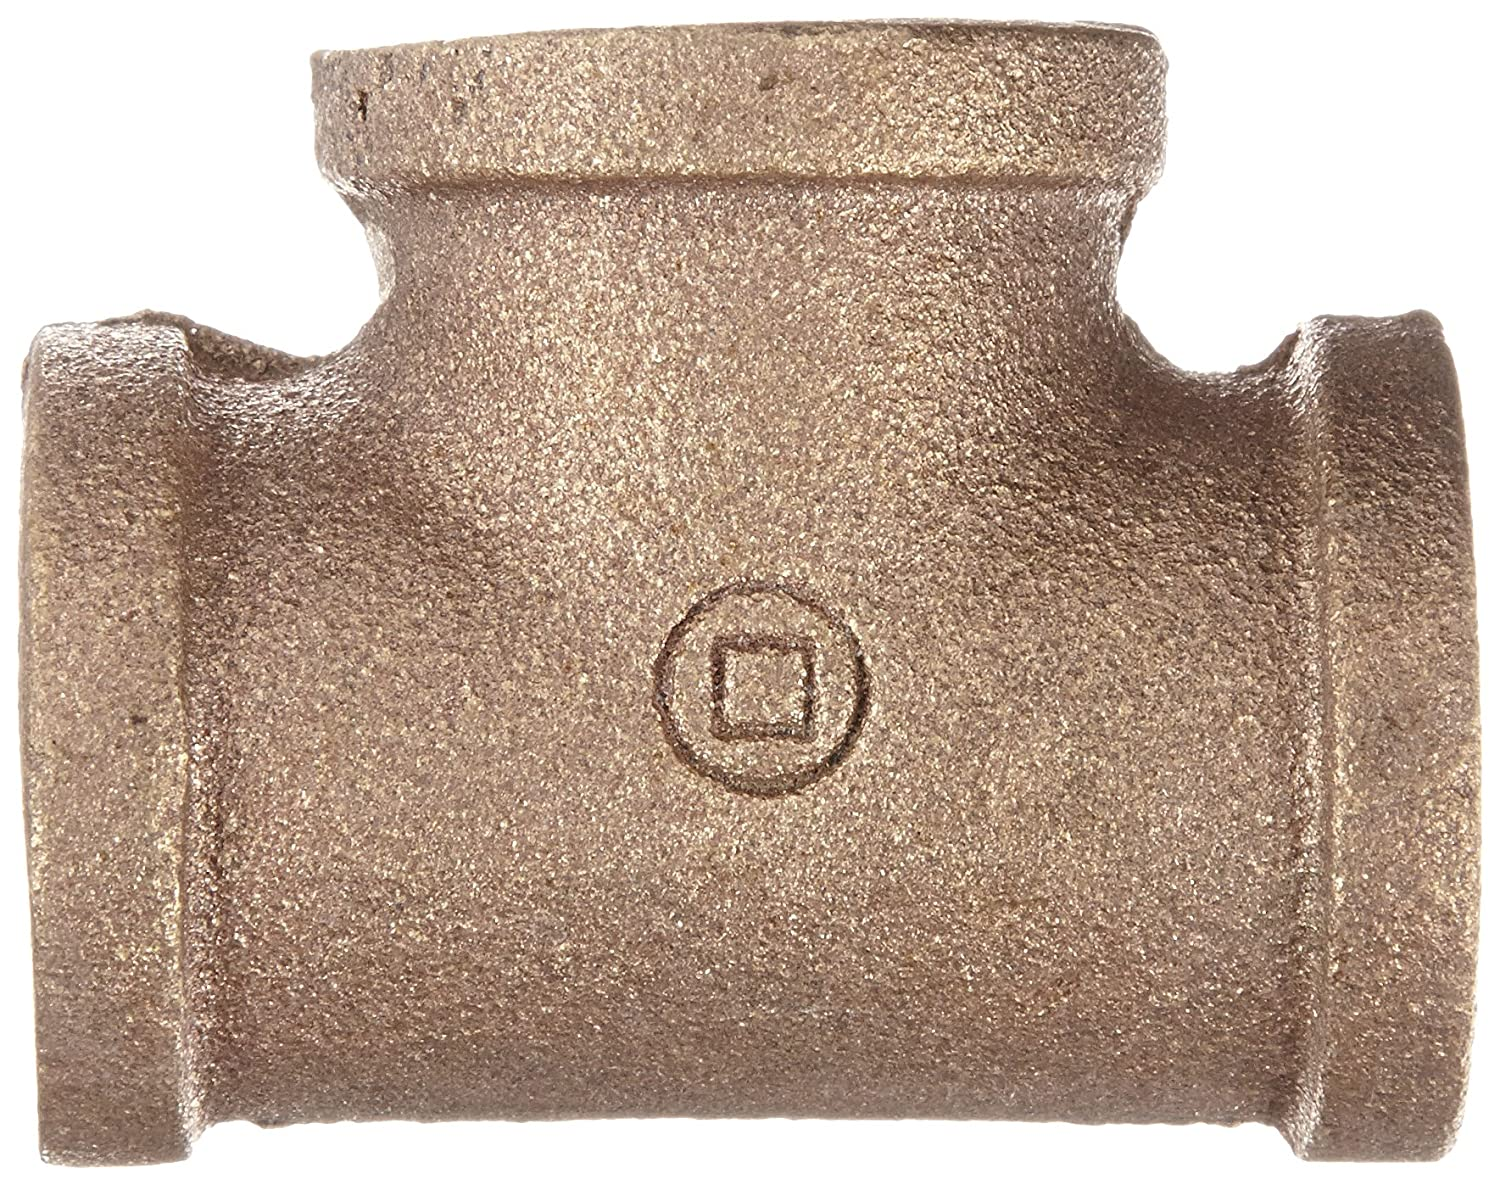 Anderson Metals 38101 Red Brass Pipe Fitting Tee 3//4 x 3//4 x 3//4 Female Pipe 3//4 x 3//4 x 3//4 Female Pipe 38101-12